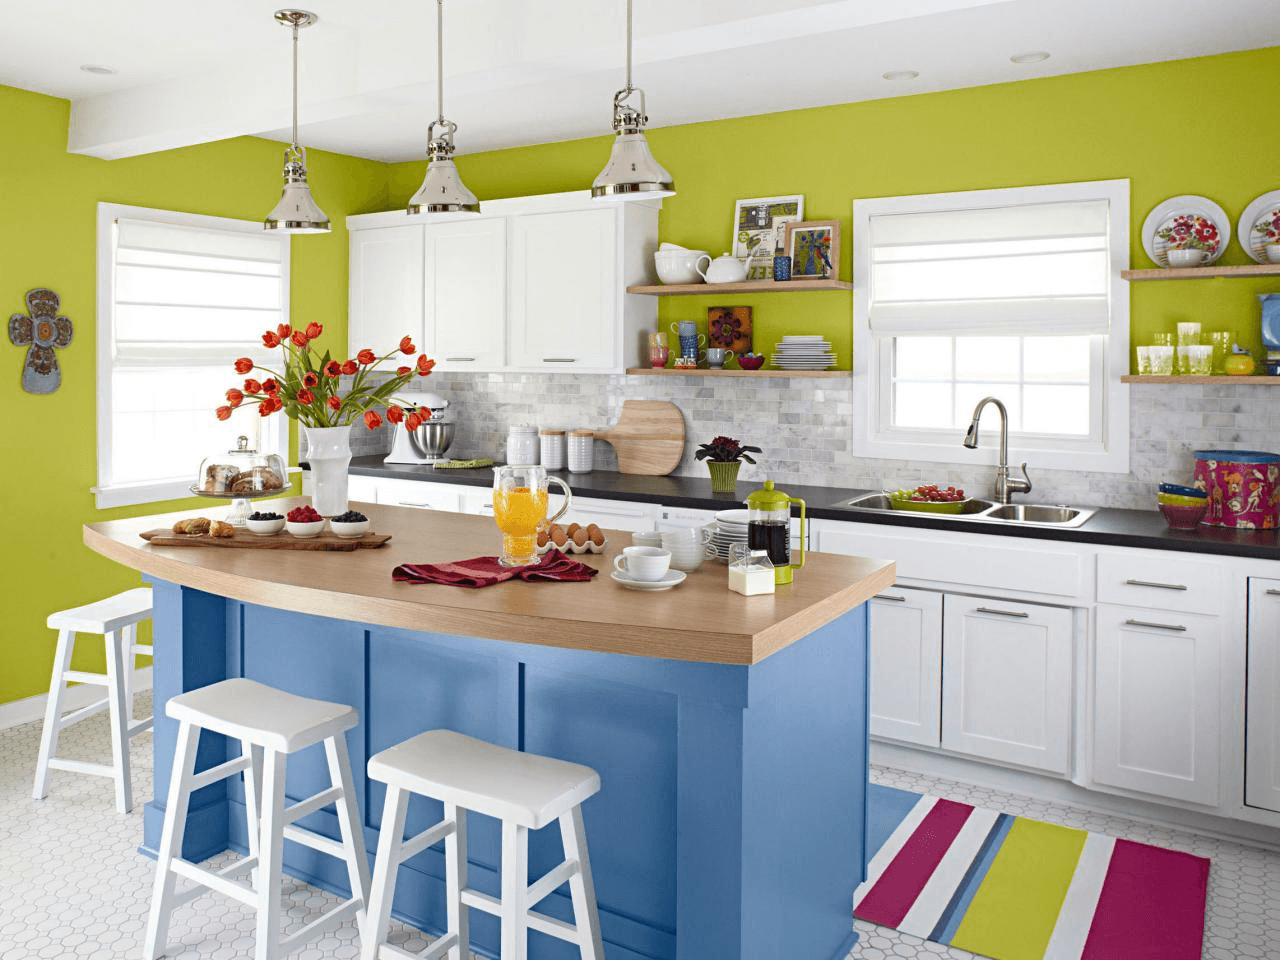 Mini dining table kitchen island design for small spaces